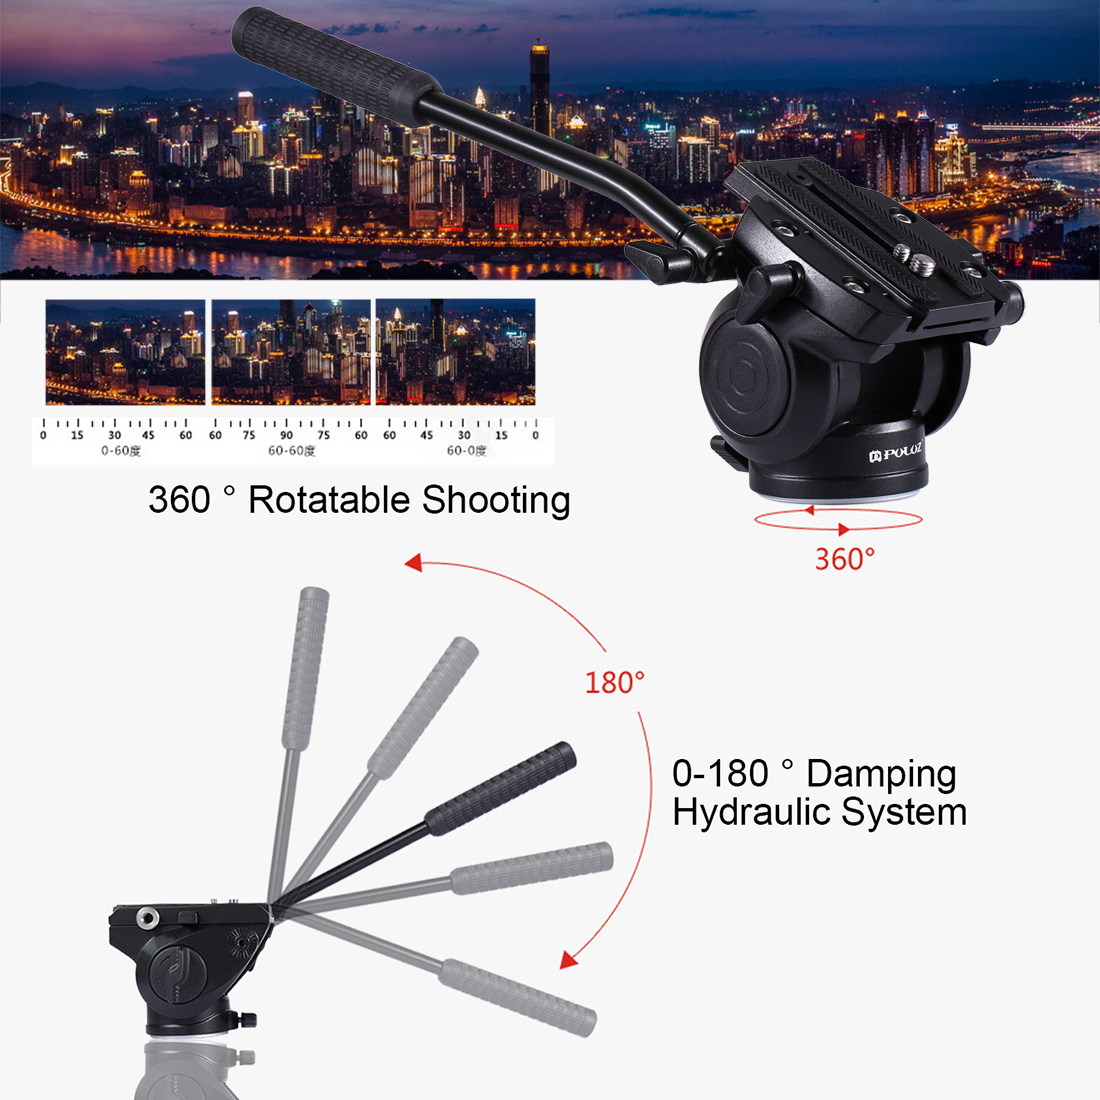 PULUZ PU3504B Heavy Duty Video Camera Tripod Action Fluid Drag Head with Sliding Plate